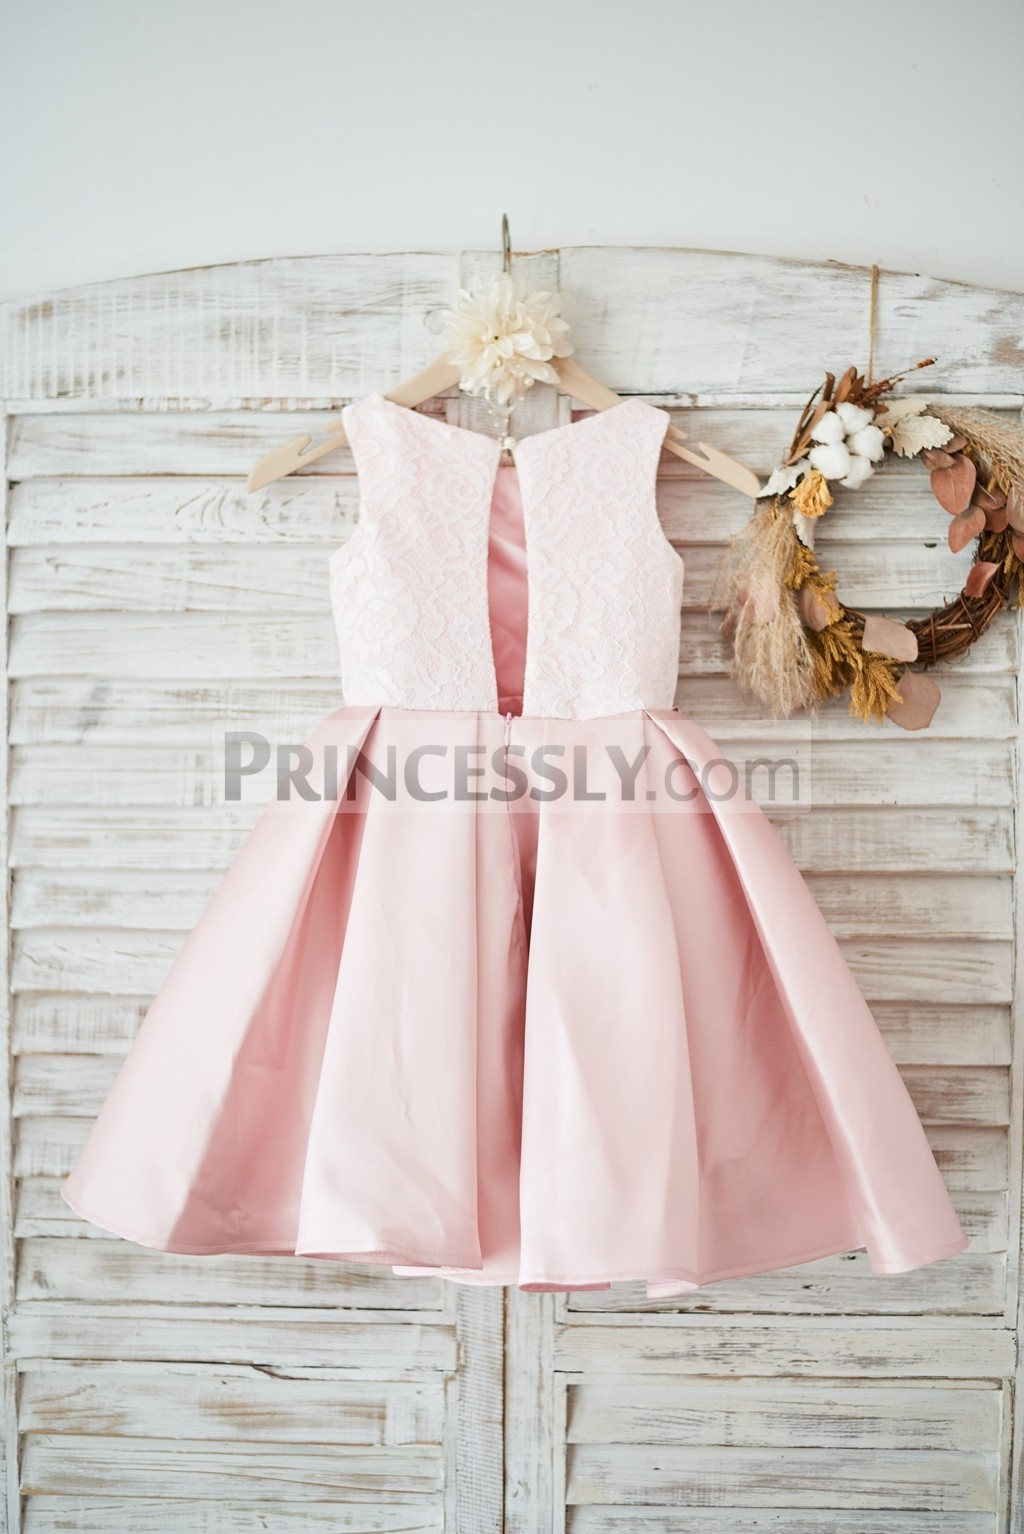 Lace satin peach pink wedding little girl dress